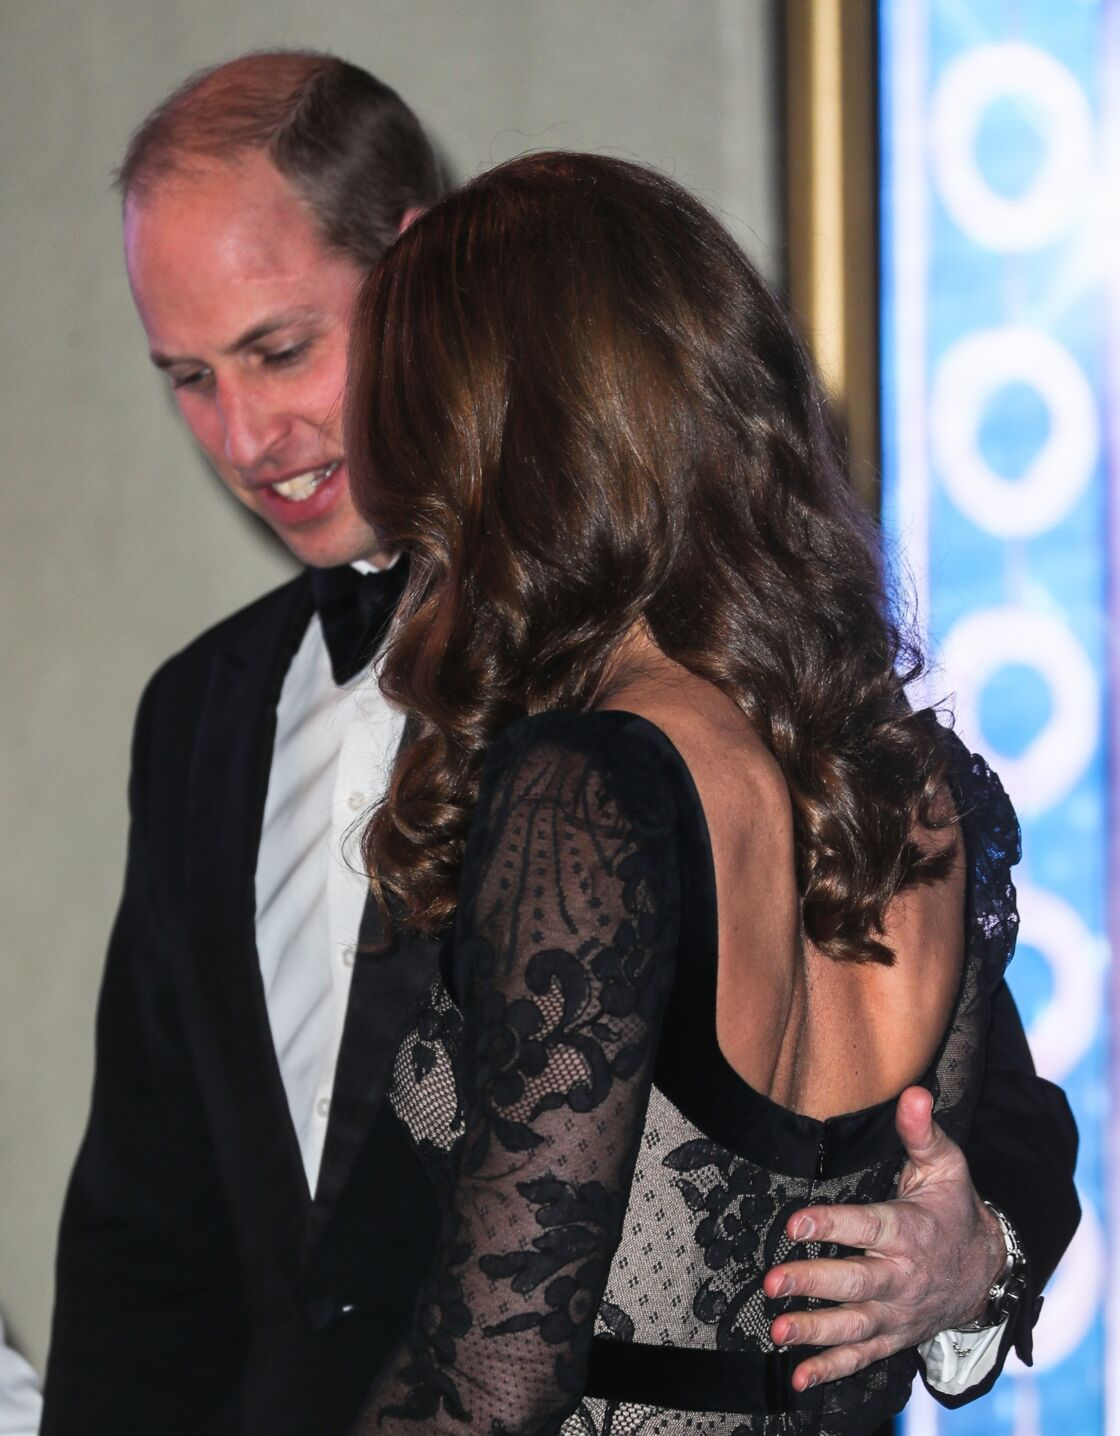 Le prince William très attentif à Kate Middleton, lors de la Royal Variety Charity, à Londres, le 18 novembre 2019..